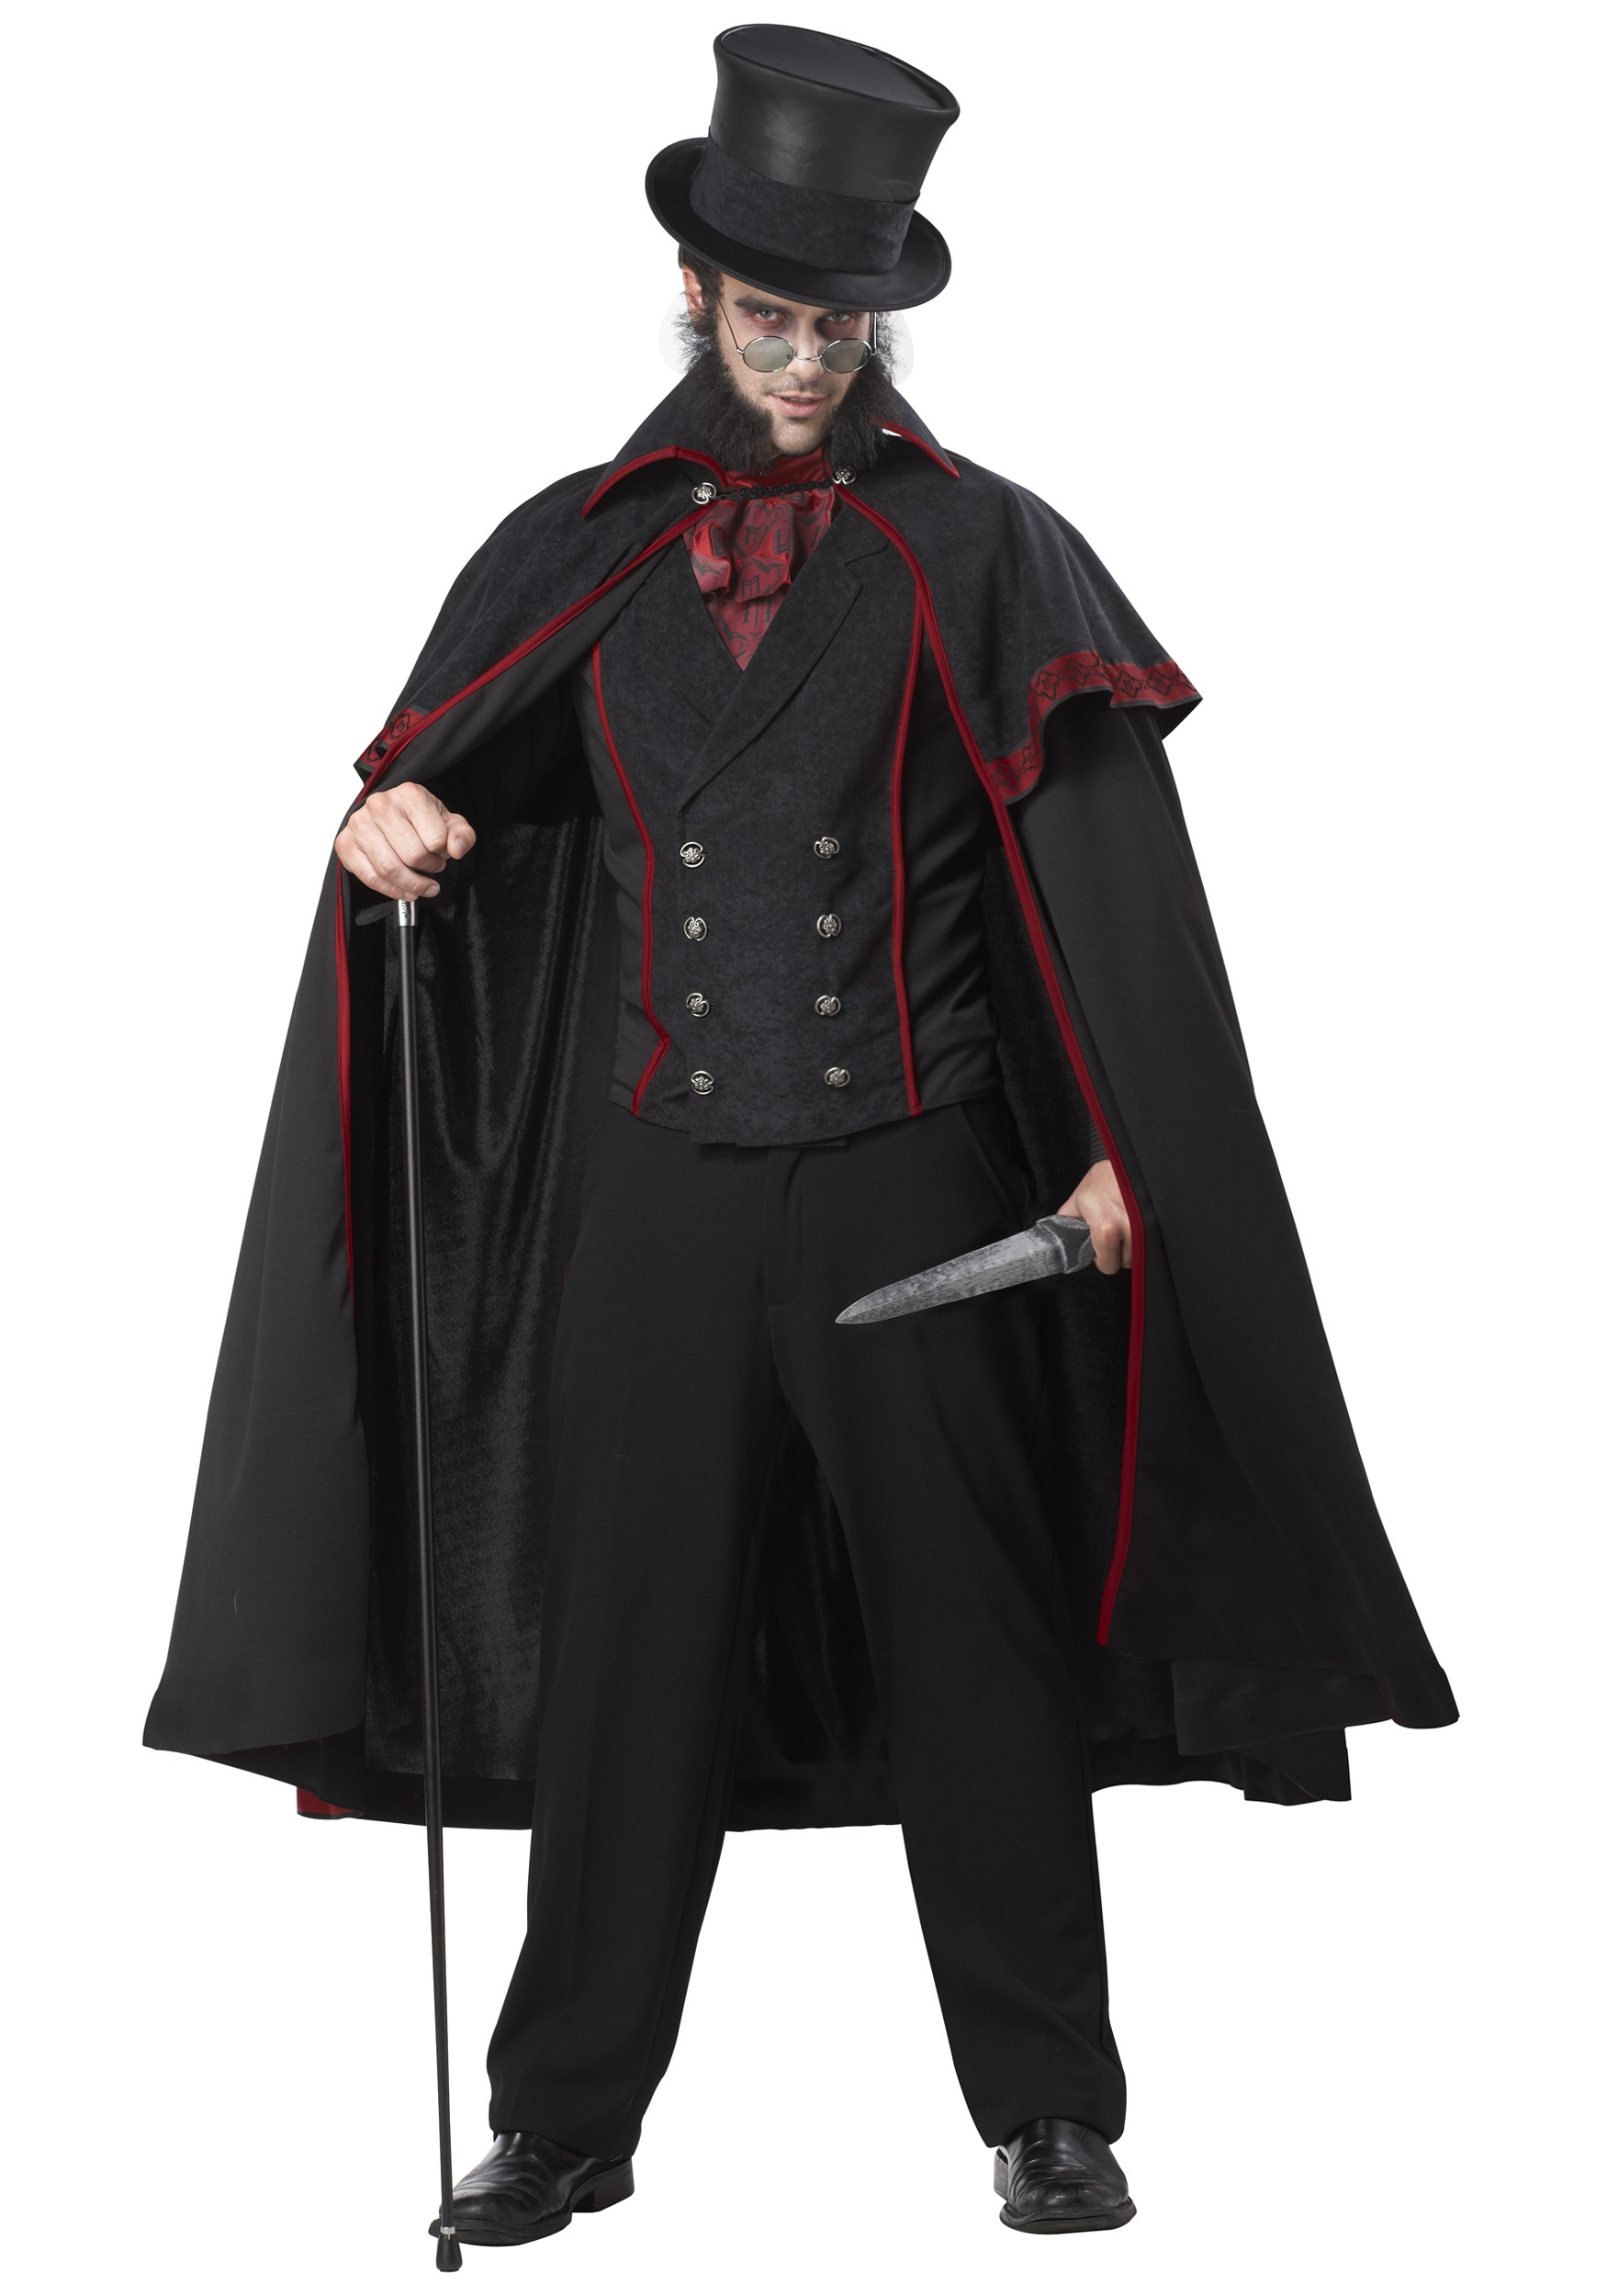 Jack the ripper costume victorian jack the ripper costume solutioingenieria Gallery